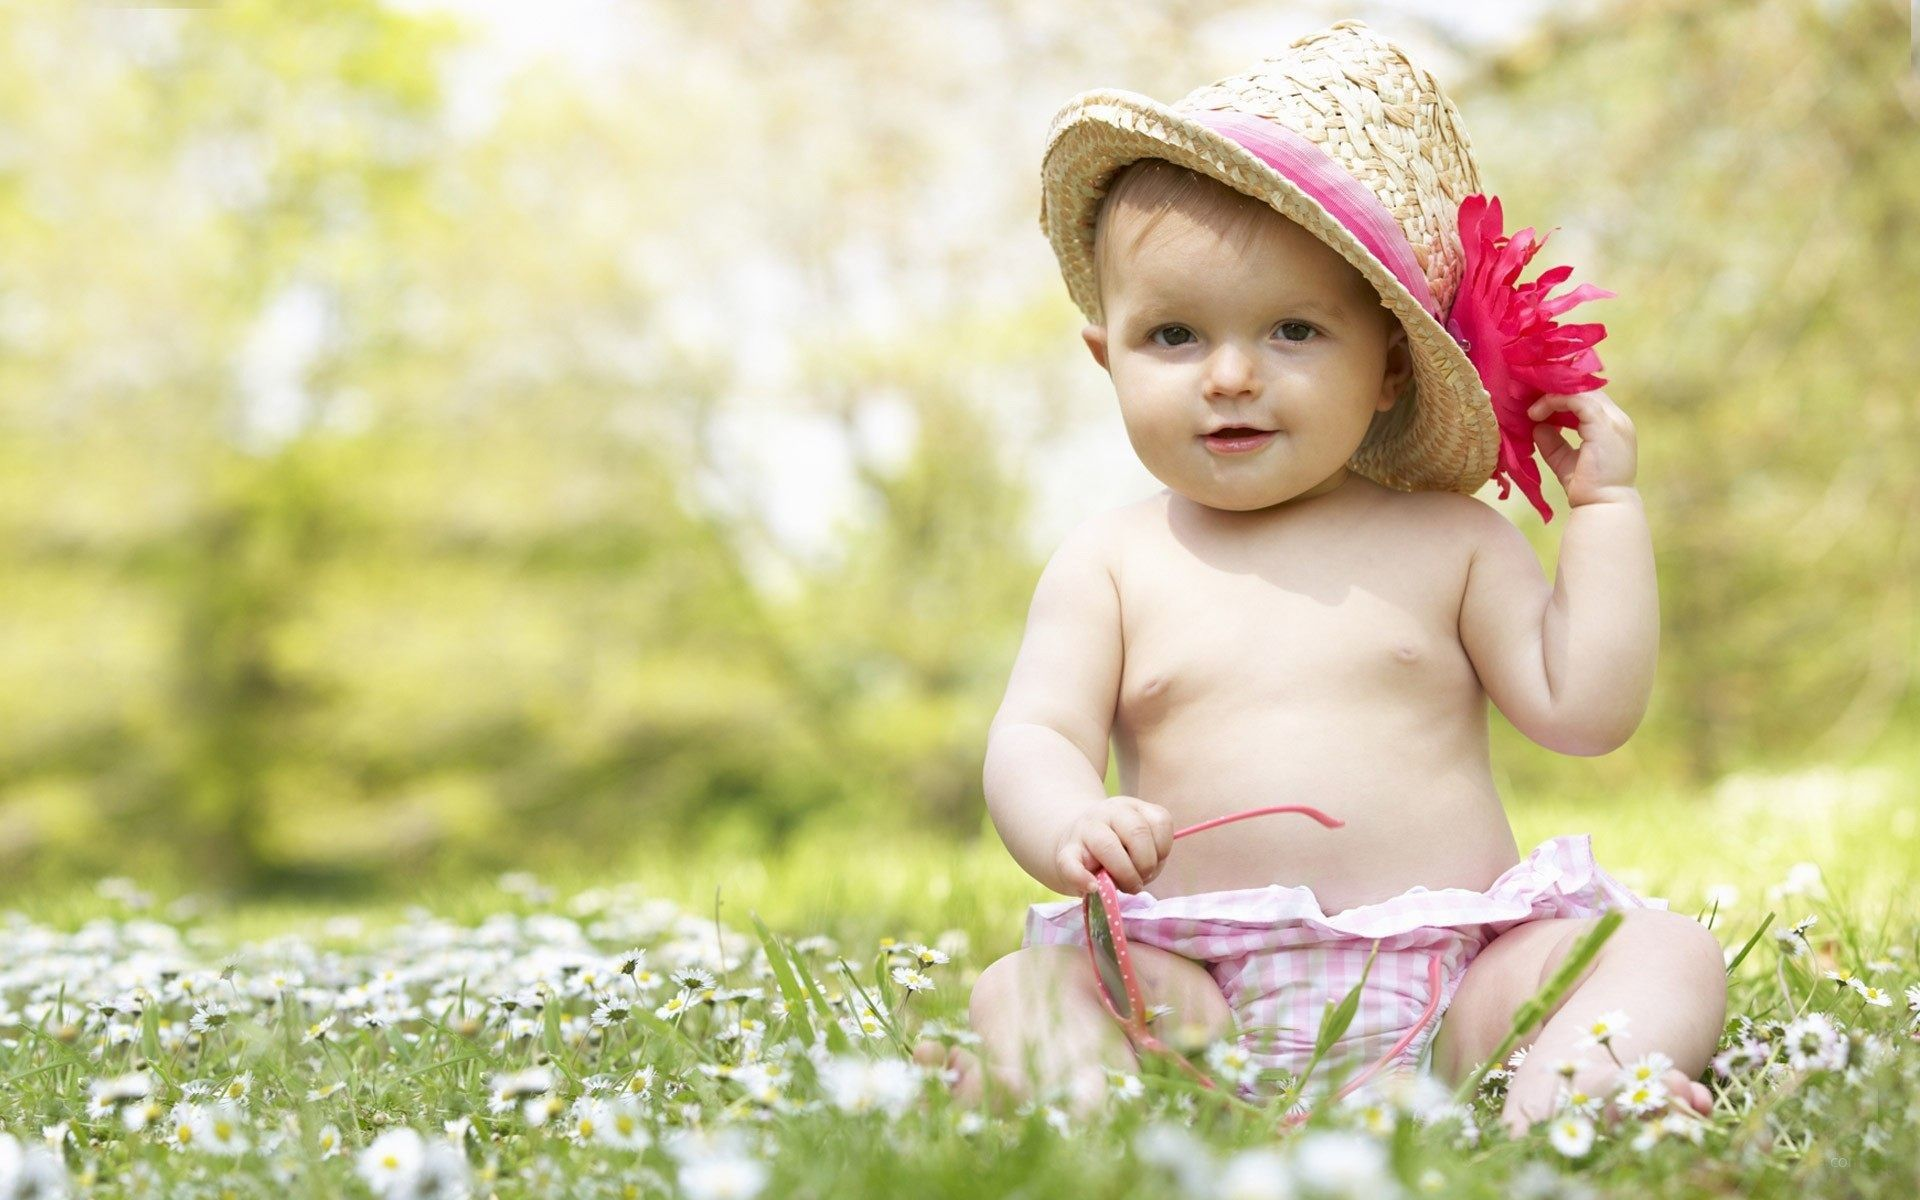 Cute Baby Pics Wallpapers 1920x1200 Hd 1080p Cute Baby Pinterest